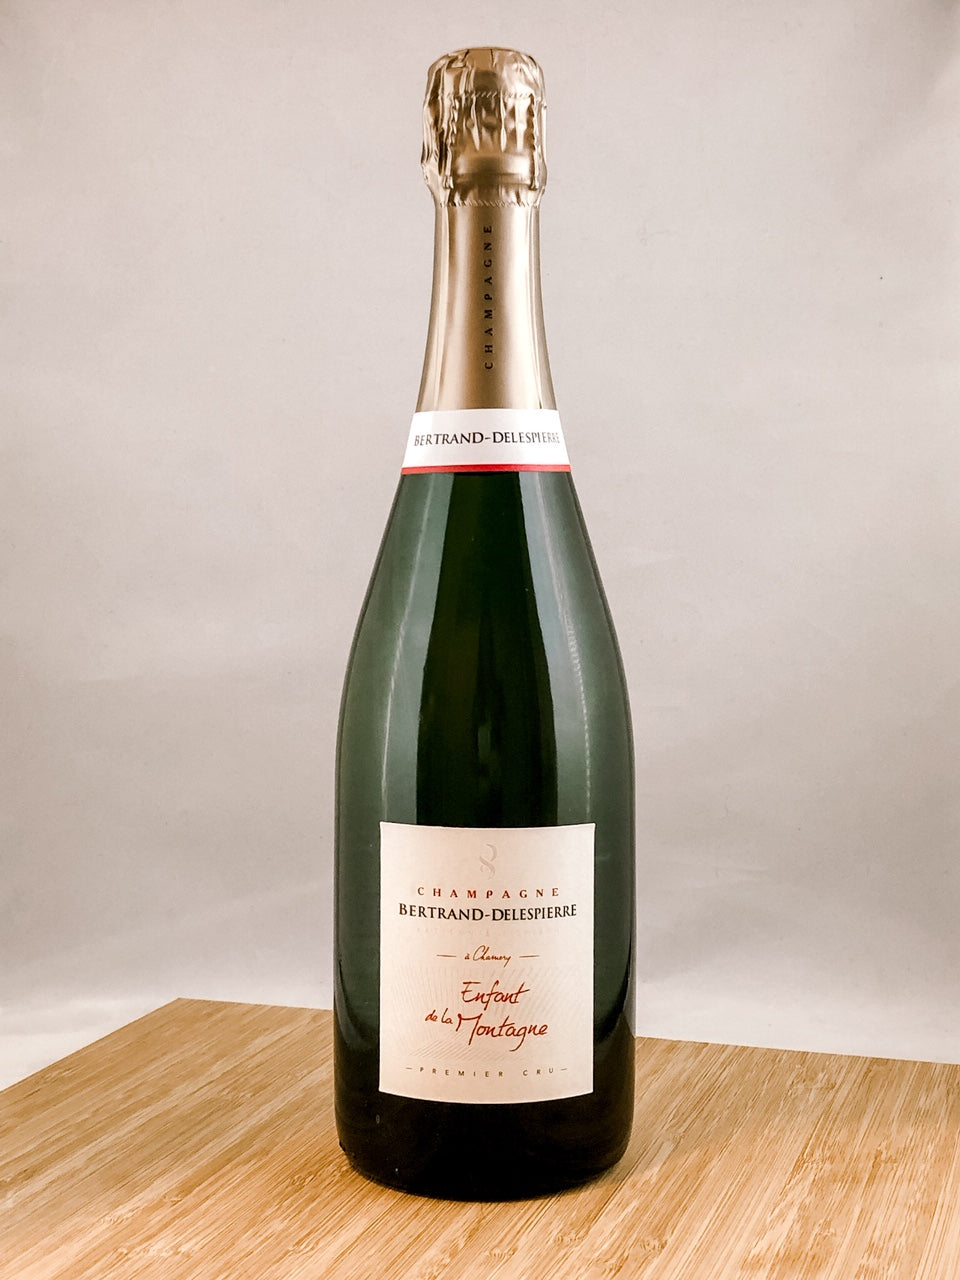 Bertrand-Delespierre Champagne, part of our champagne delivery and great for unique gift ideas.